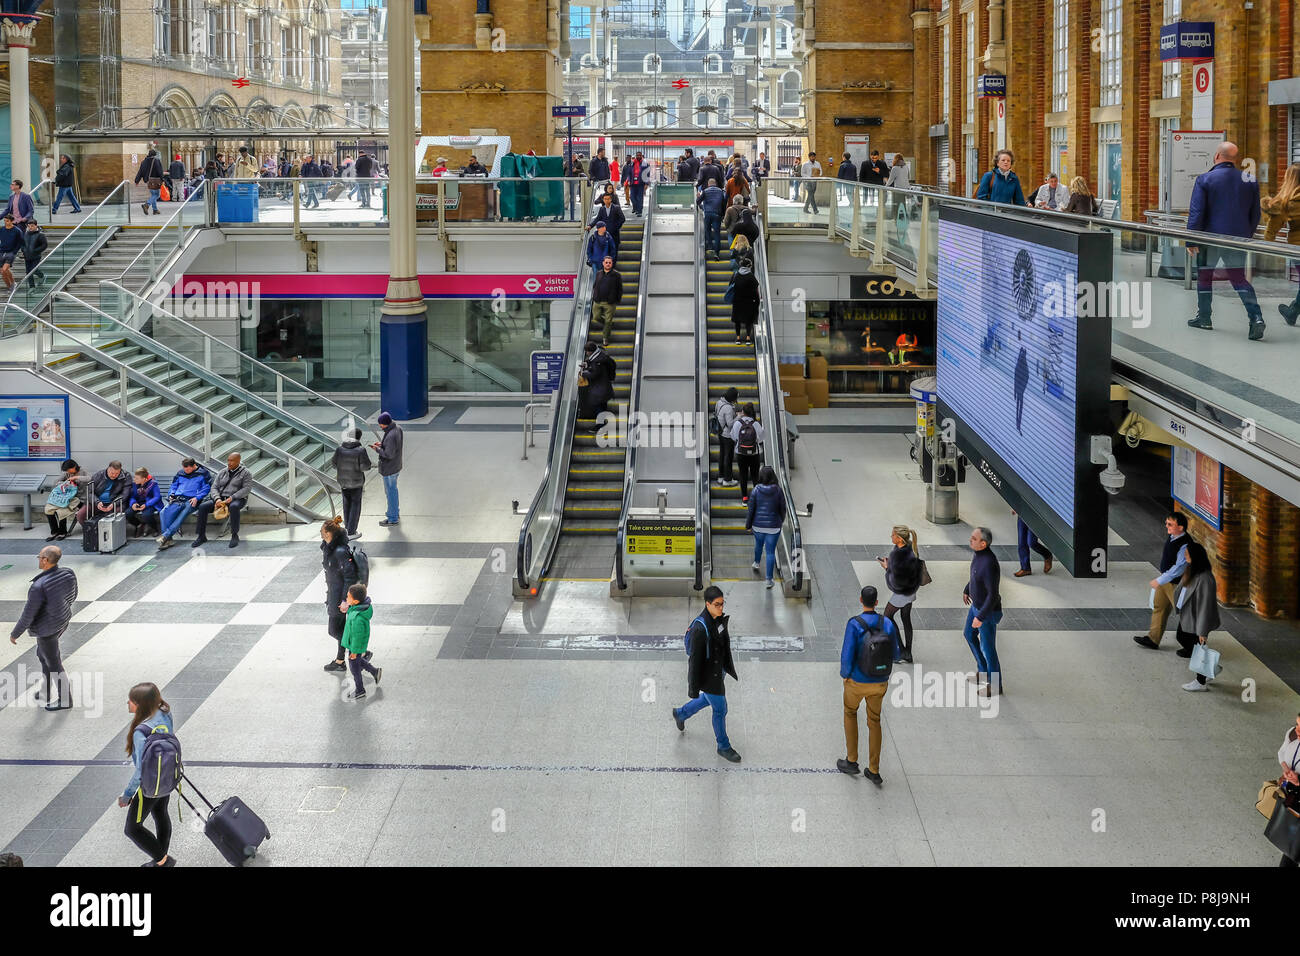 Liverpool Street, London, UK - April 6, 2018:People on the escalator near the entrance to Liverpool Street Mainline Station. - Stock Image